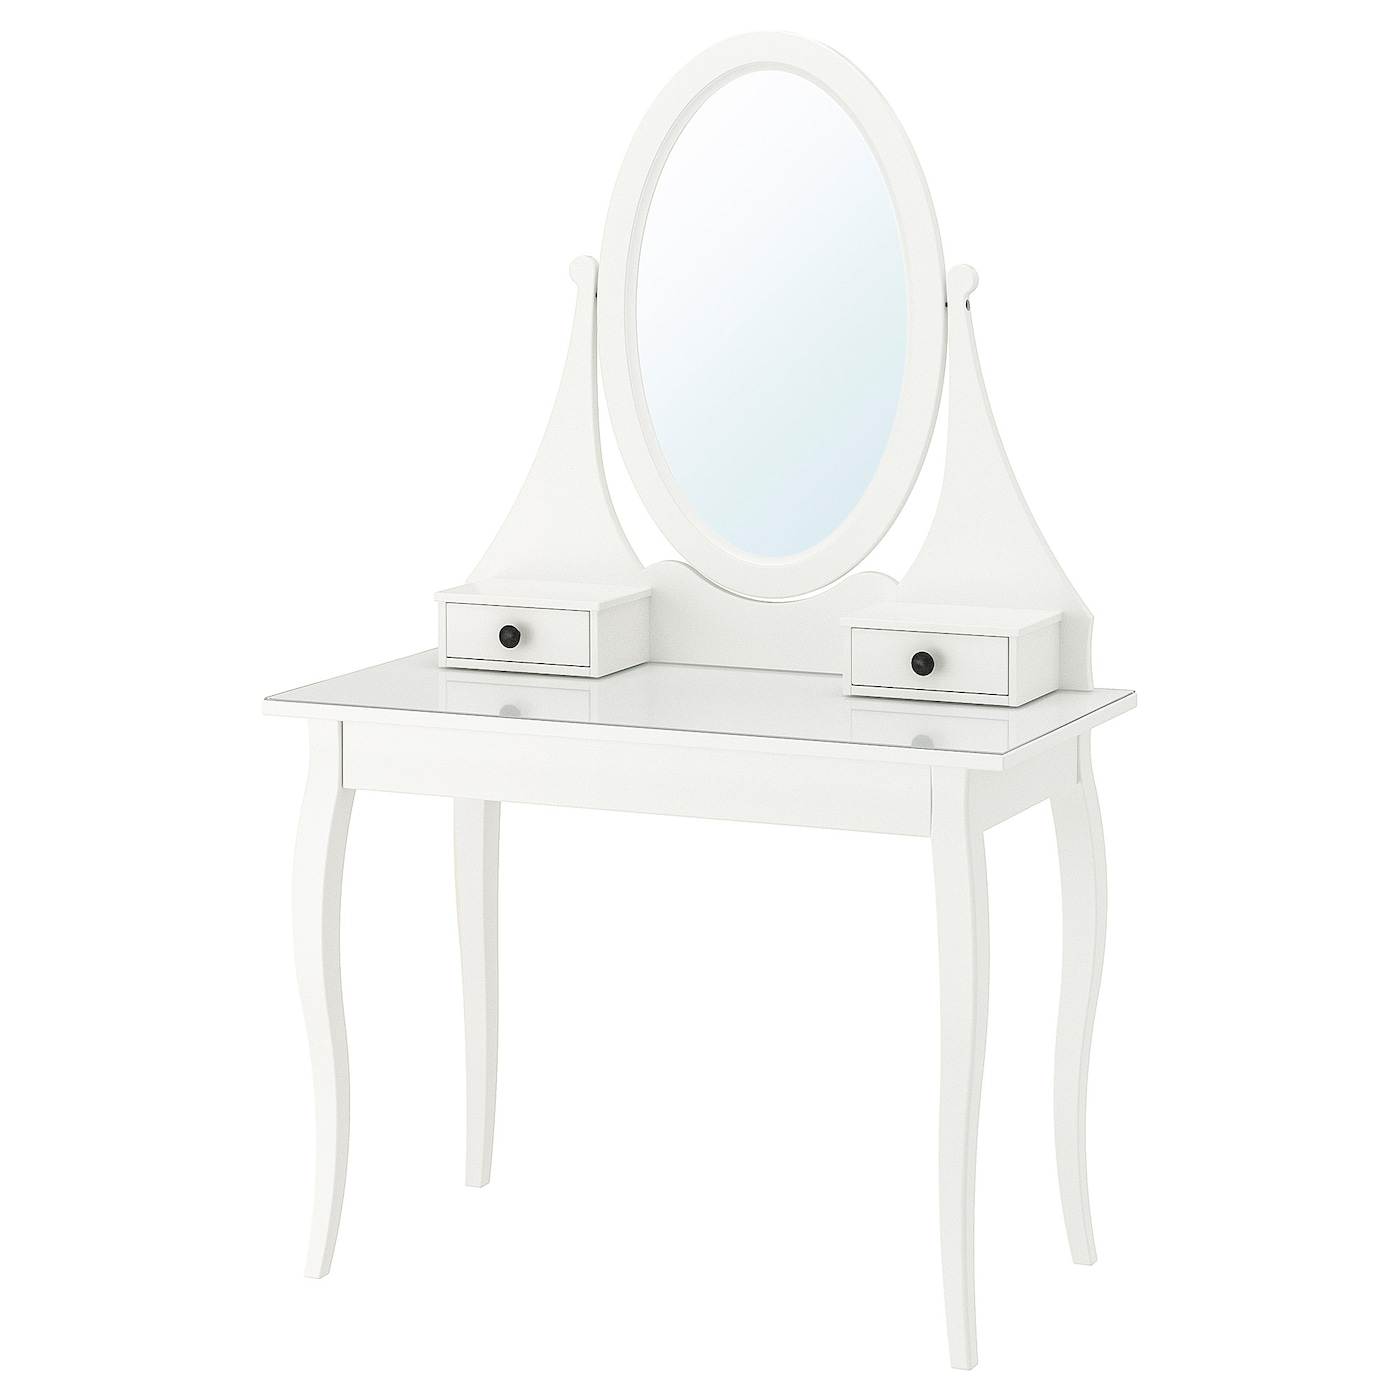 "HEMNES Dressing table with mirror - white 11 11/11x11 11/11 "" (11x110 cm)"